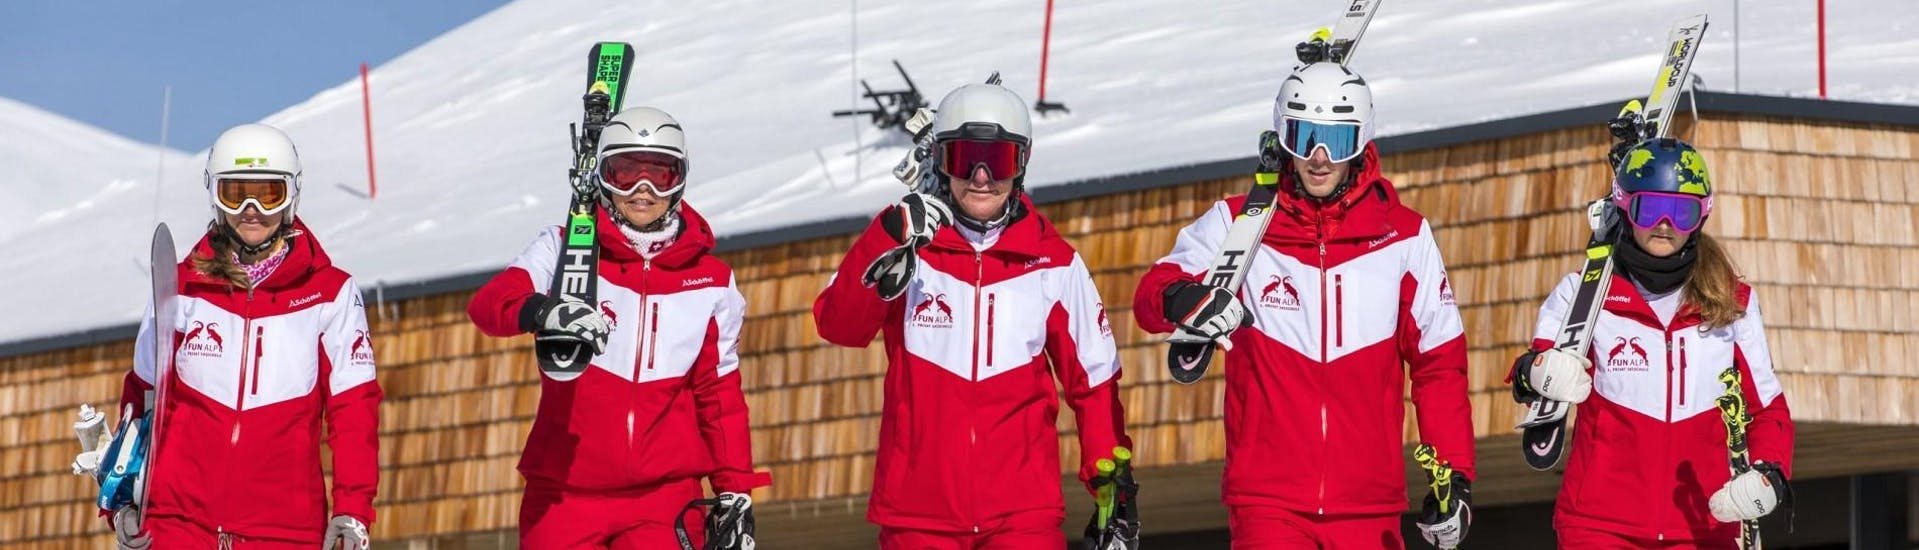 The ski instructors of Privatskischule Kleinwalsertal have lot of fun during the private kis ski lesson for all levels in Riezlern.